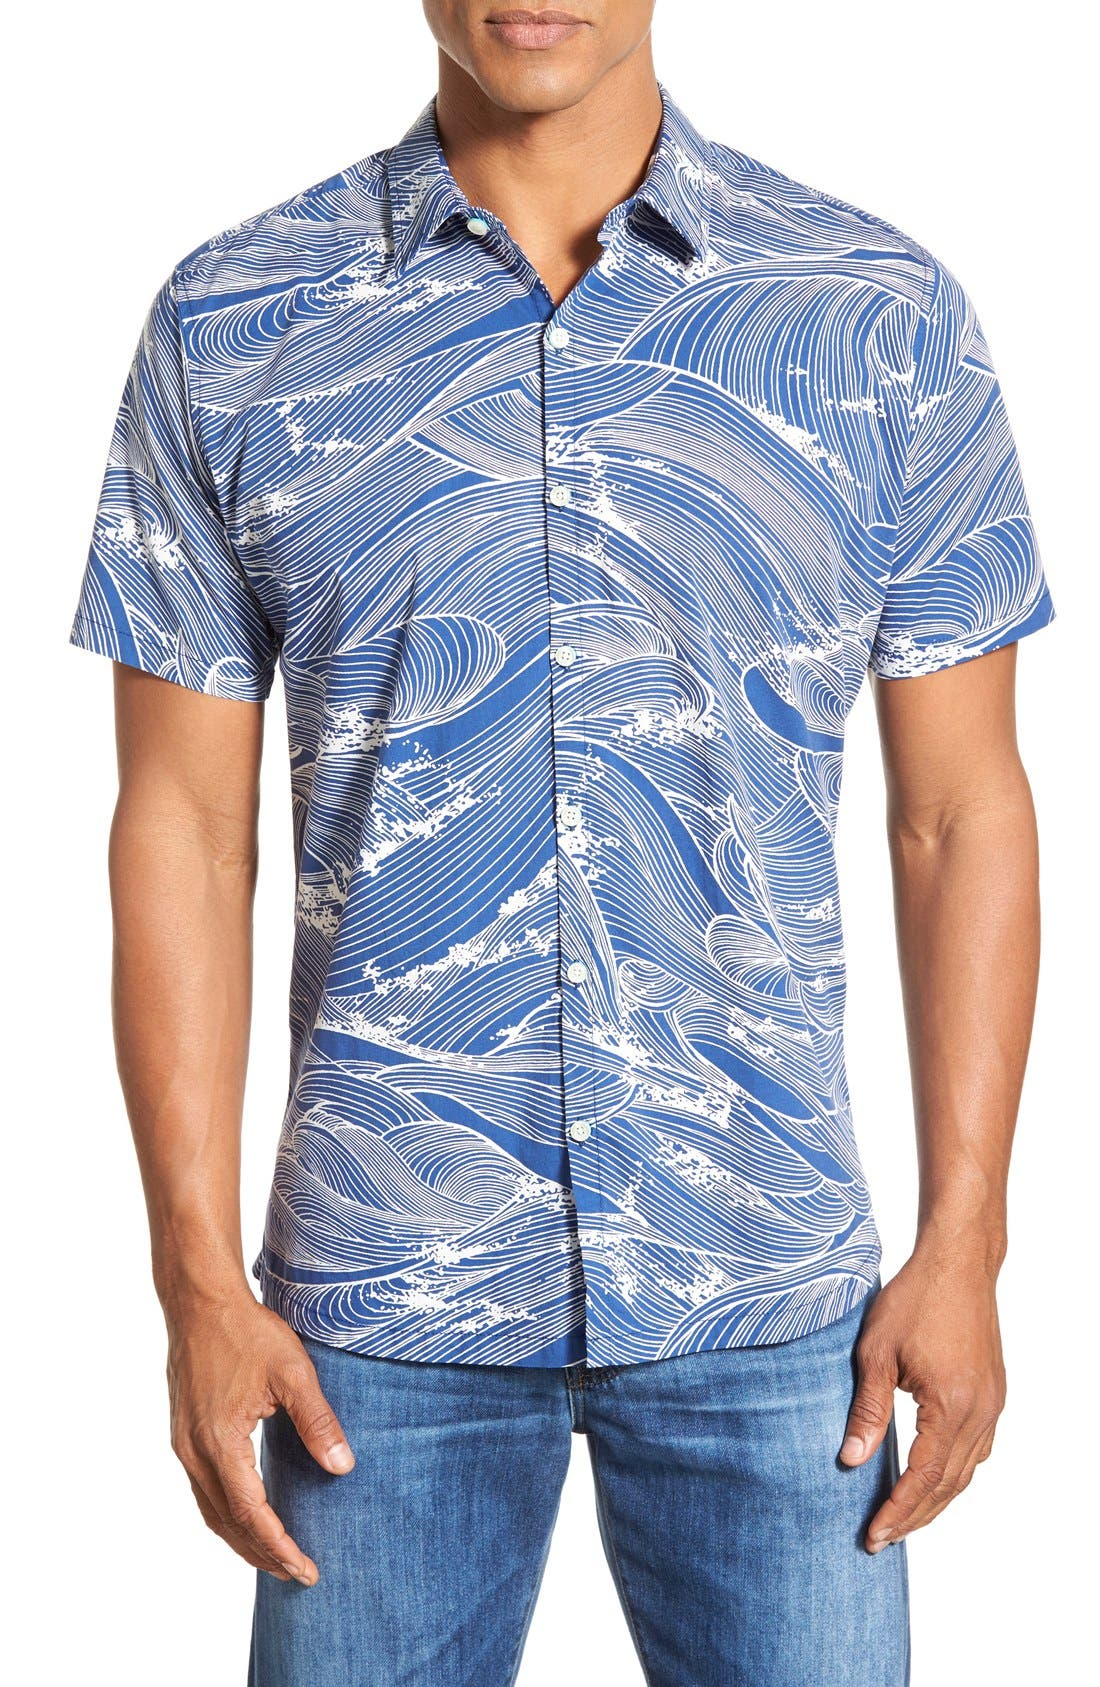 'Ocean's 11' Classic Fit Cotton Lawn Sport Shirt,                         Main,                         color, Midnight